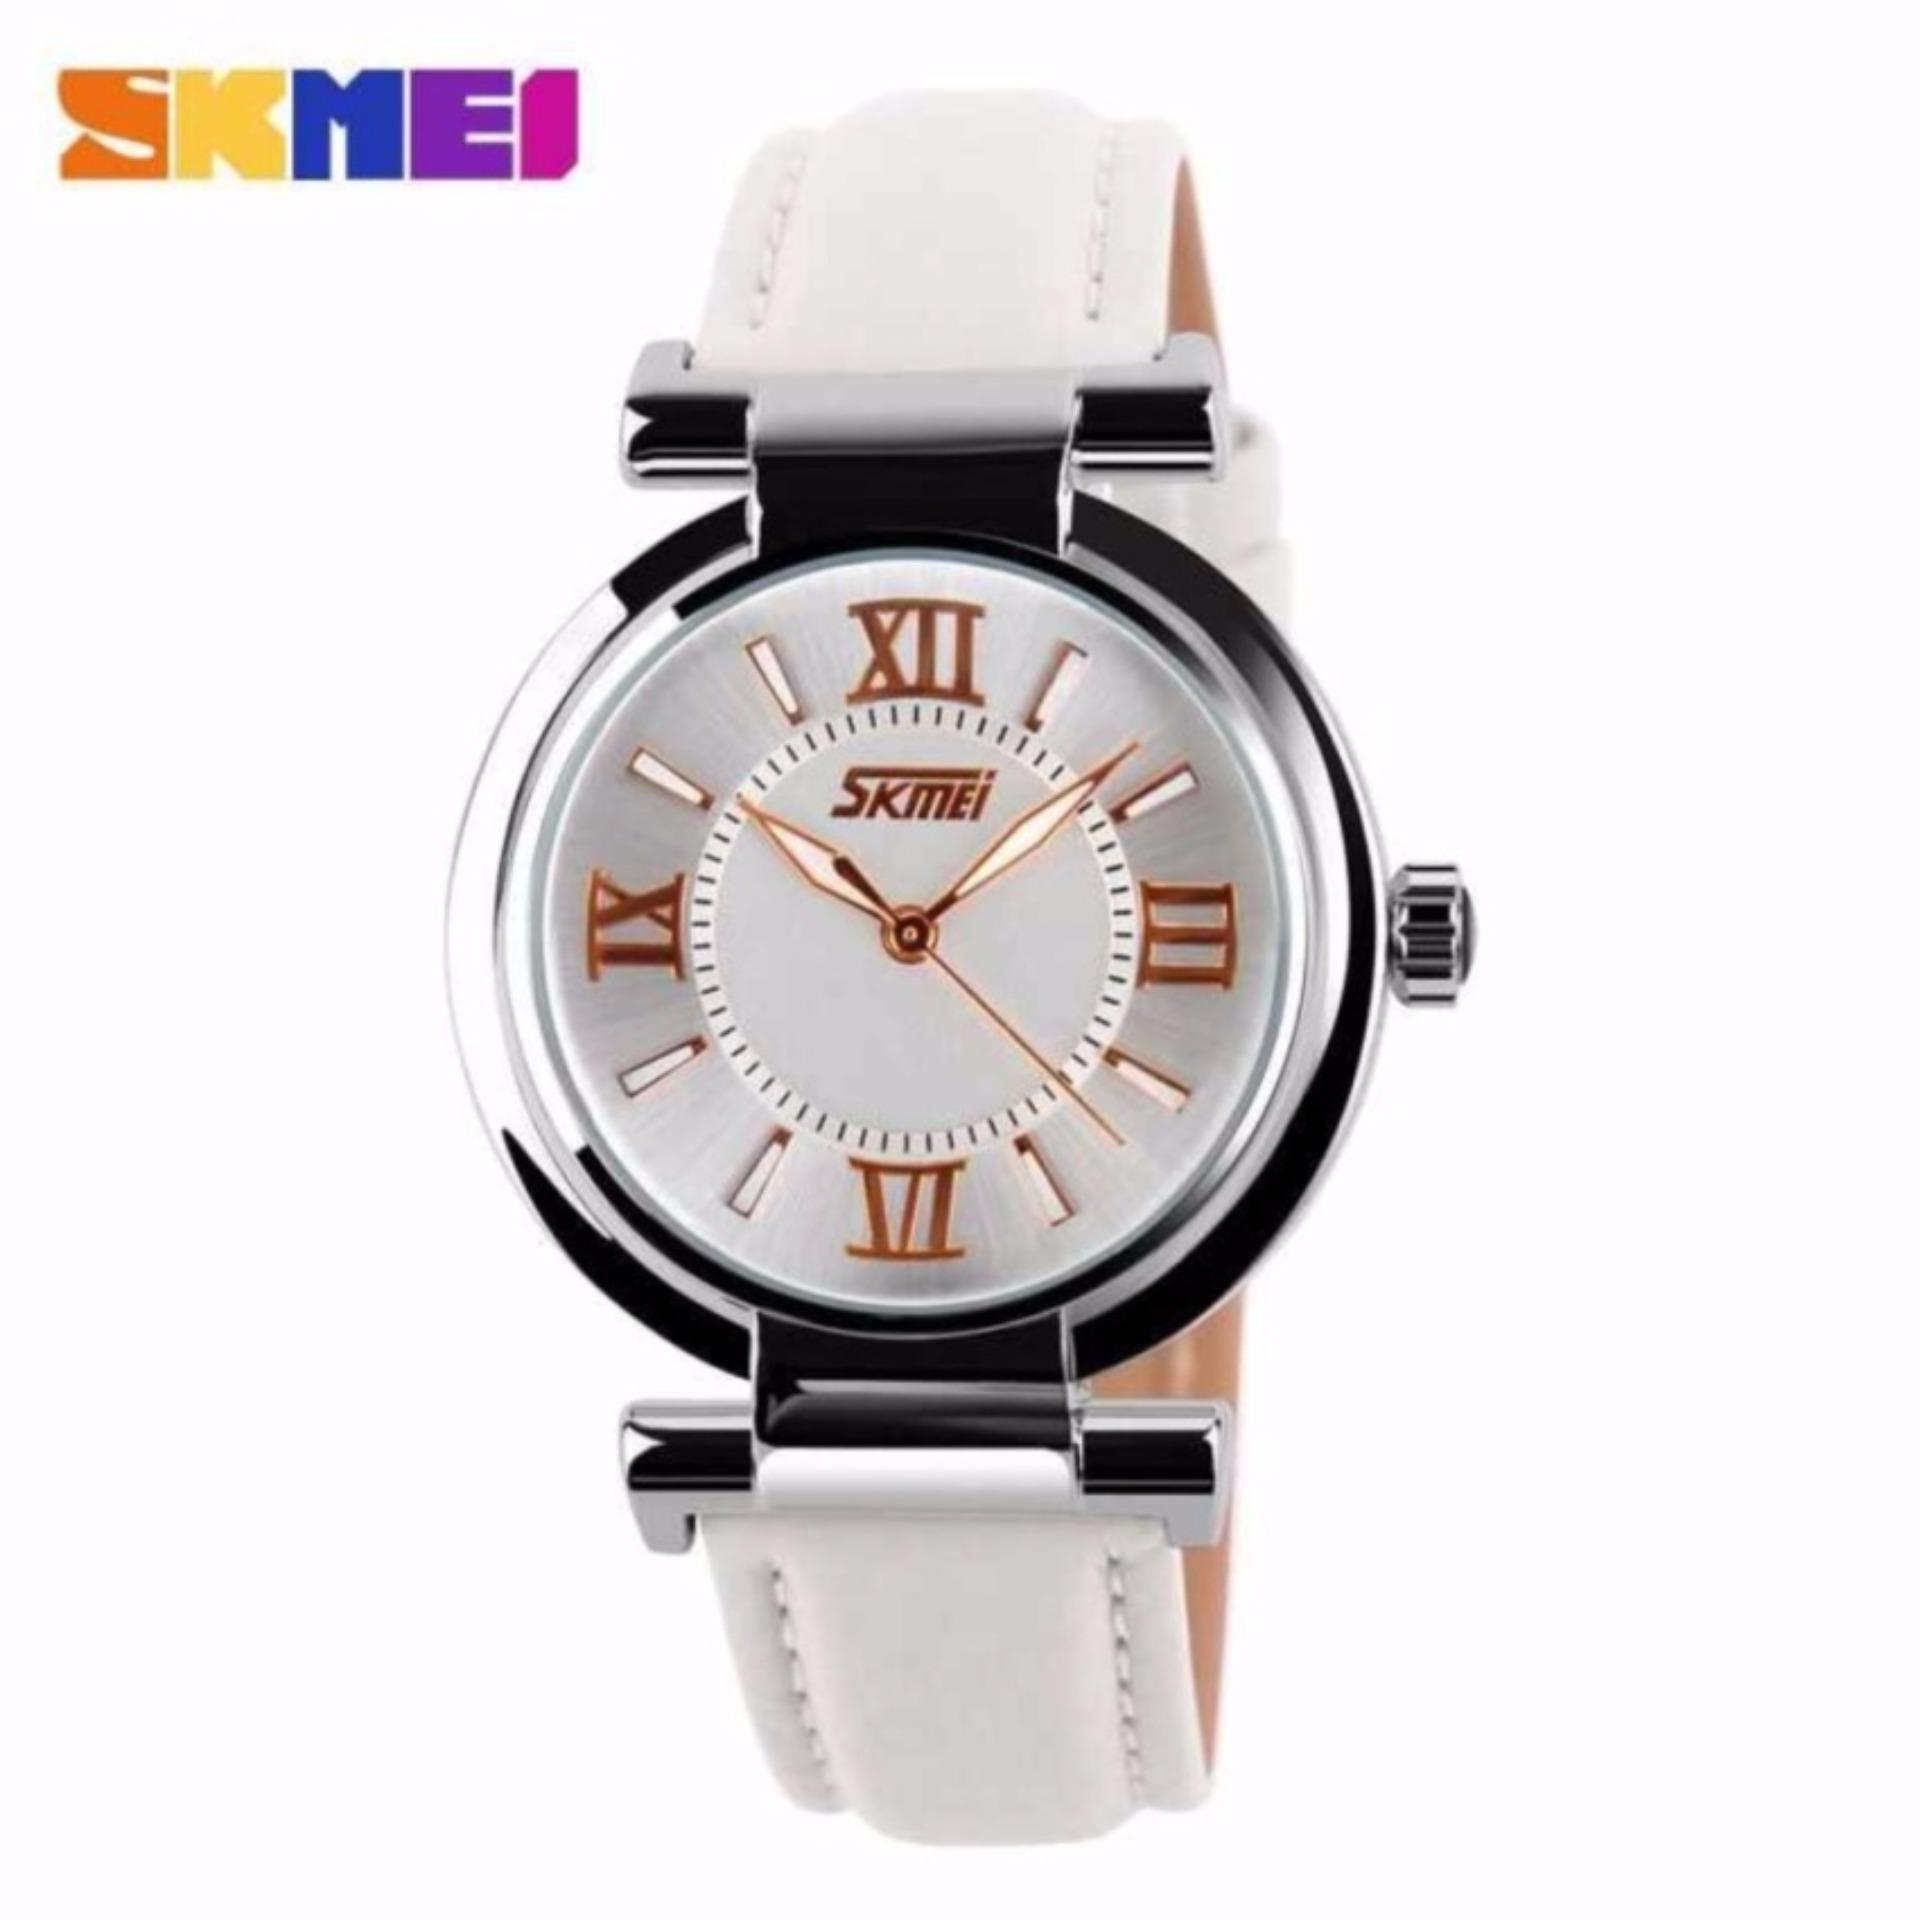 SKMEI La s Analog Jam Tangan Wanita Anti Air Water Resistant WR 30m 9075CL Strap Leather Kulit